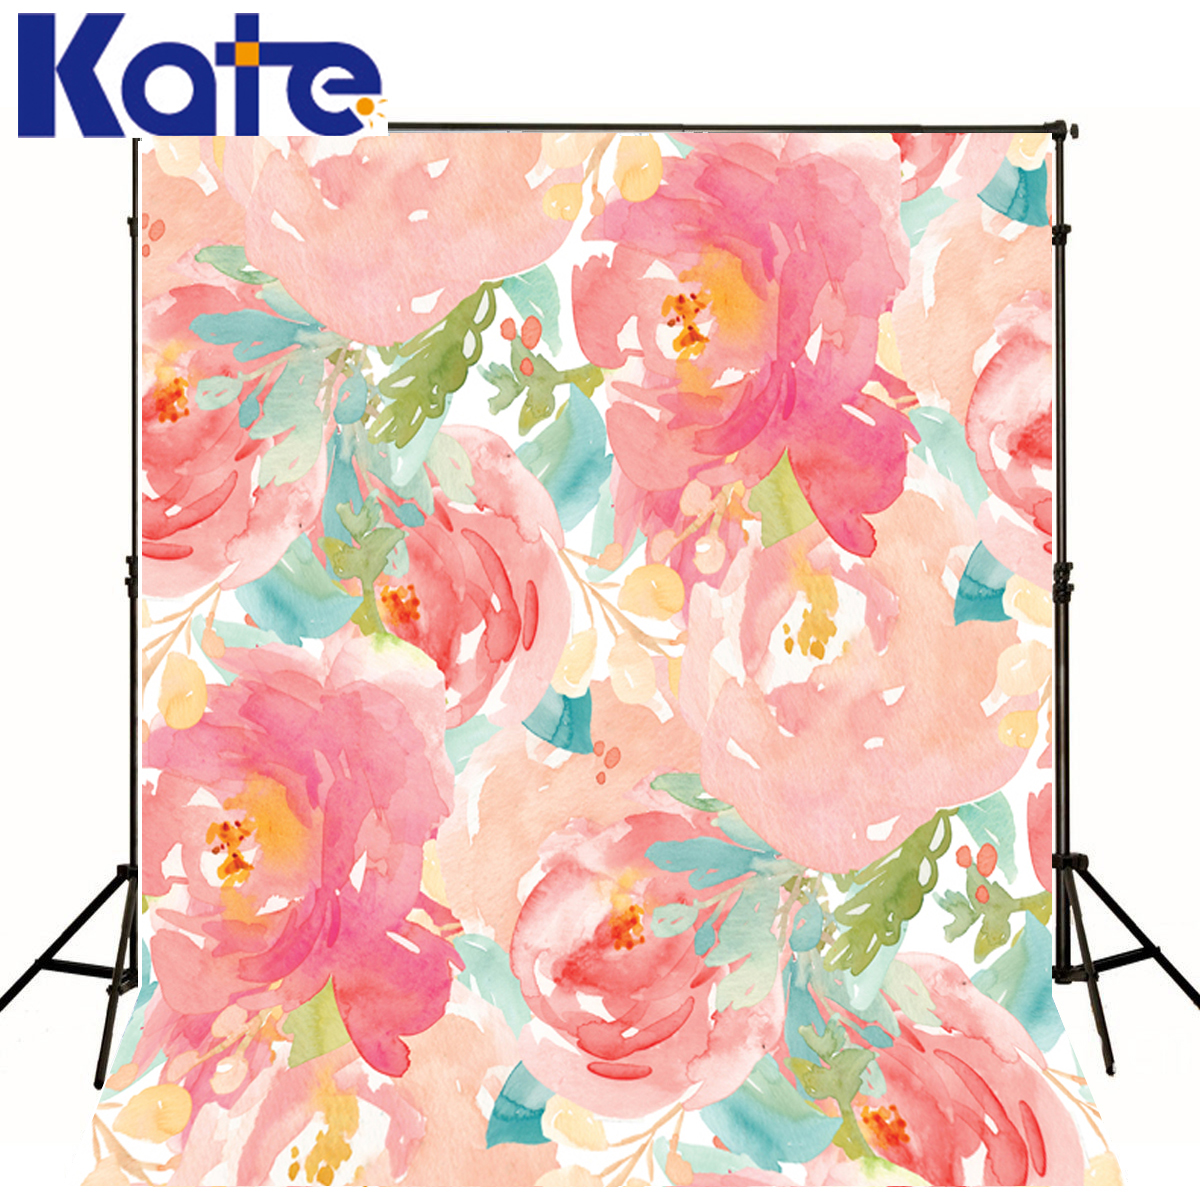 Kate Wedding Background Photography Painting Red Flower Fond Photographine Photo Studio Print Backdrop Photography J01677<br>